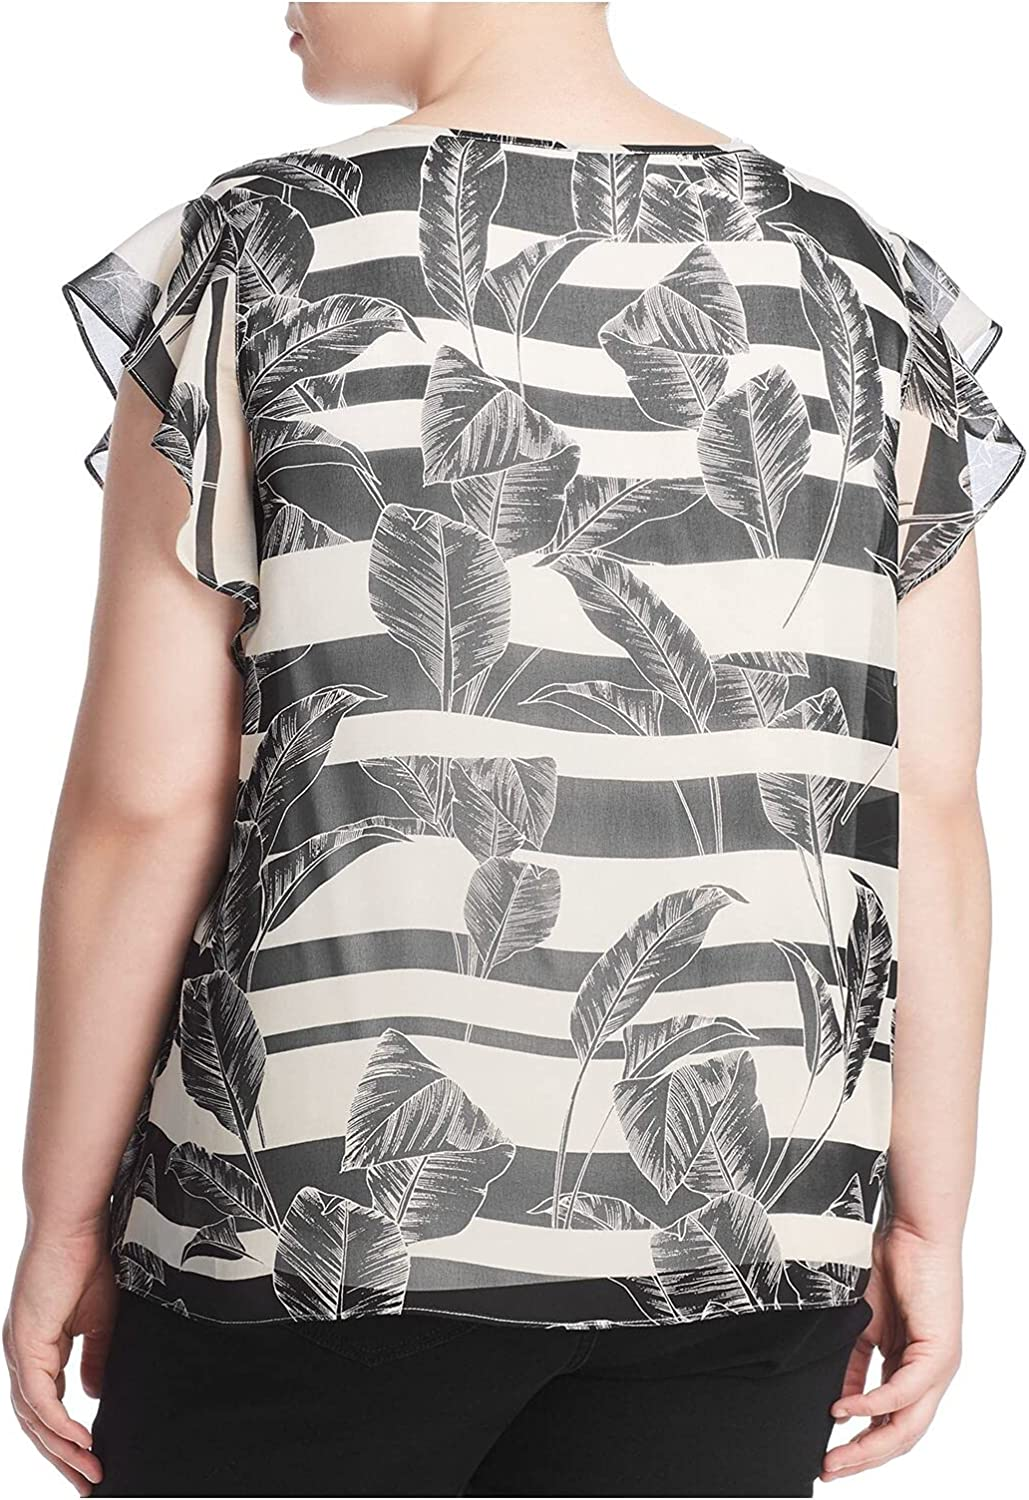 Vince Camuto Specialty Size Womens Plus Size Flutter Sleeveless Tropical Shadows Chiffon Blouse Rich Black 2X (US 18W-20W)